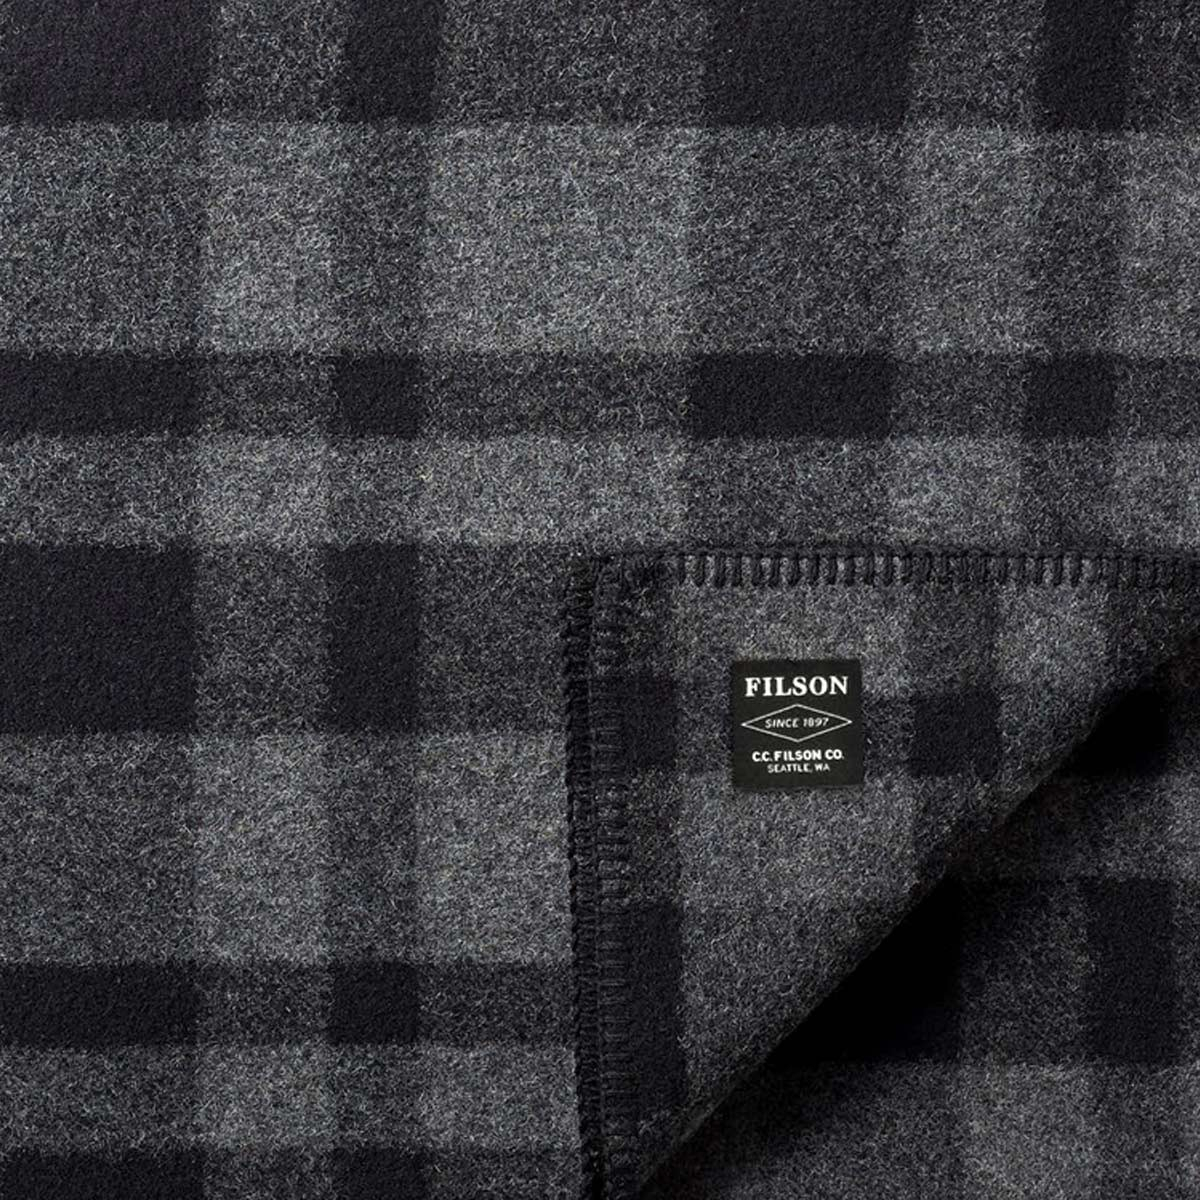 Filson Mackinaw Wool Blanket 11080110-Gray Black, keeps you warm in any weather